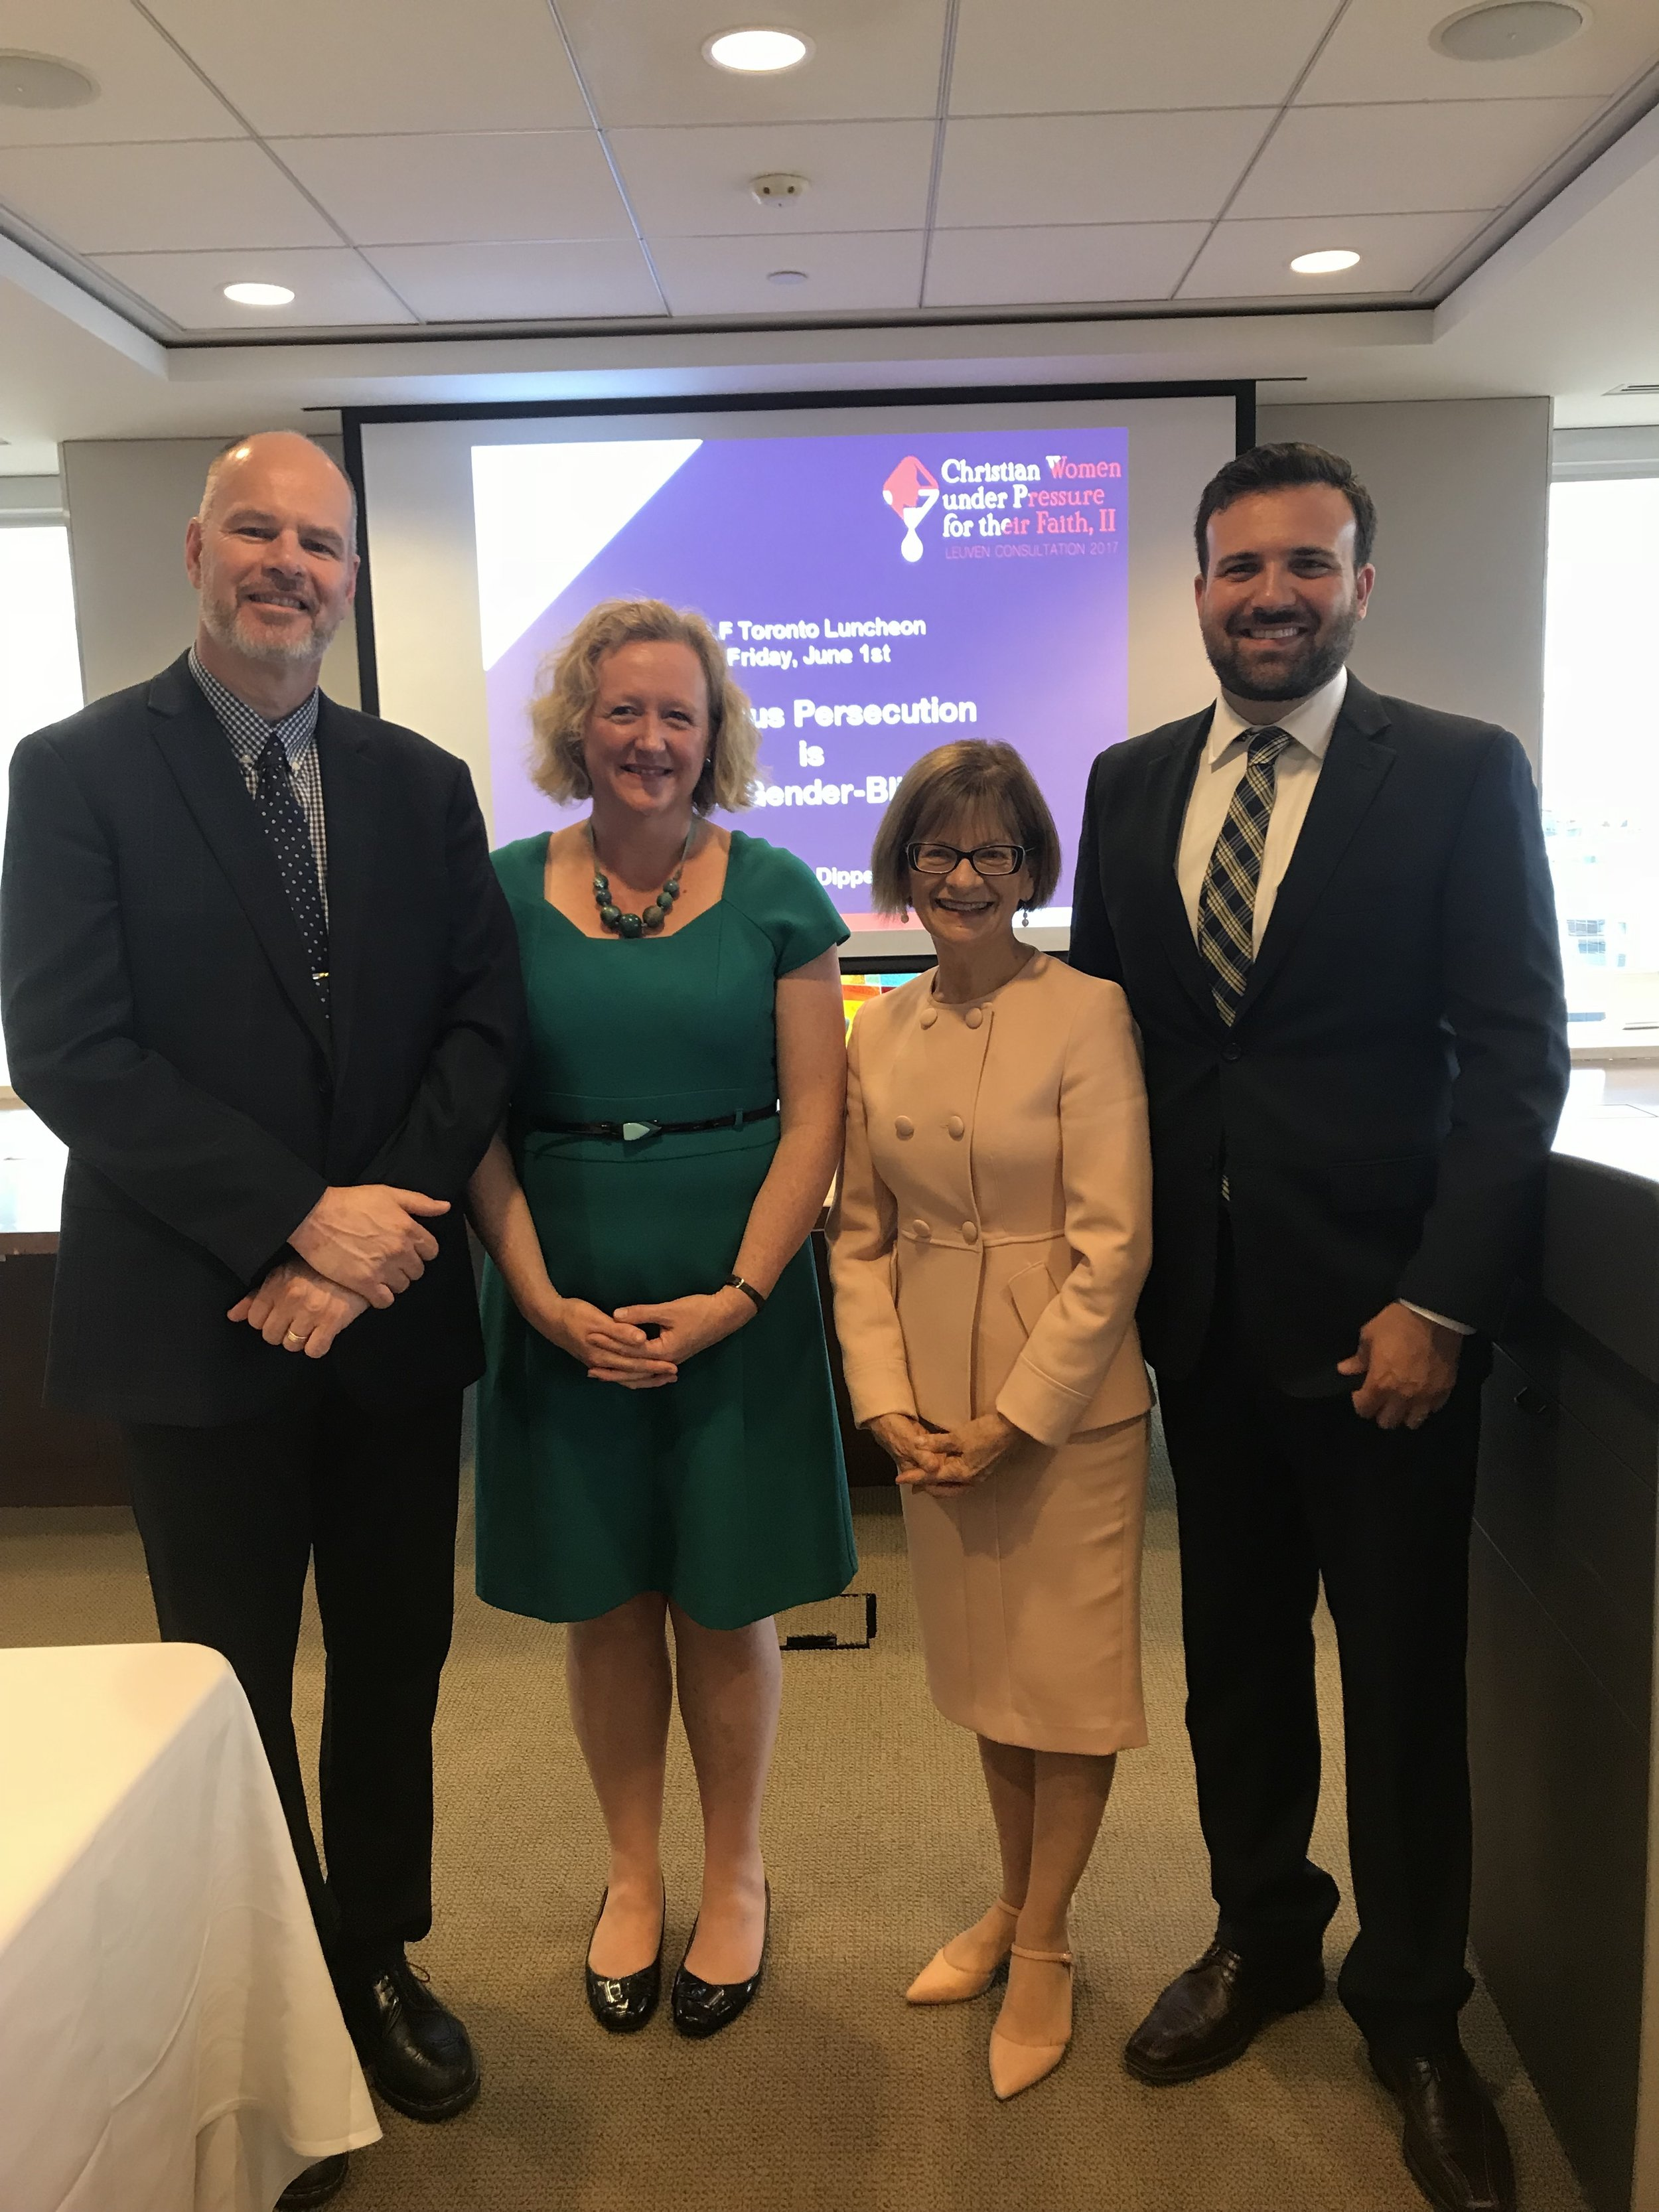 Pictured left to right: Floyd Brobbel (VP of International Ministry & Operations, VOM Canada), Emma, Ruth Ross (Special Advisor, CLF), and Derek Ross (ED & General Counsel, CLF)